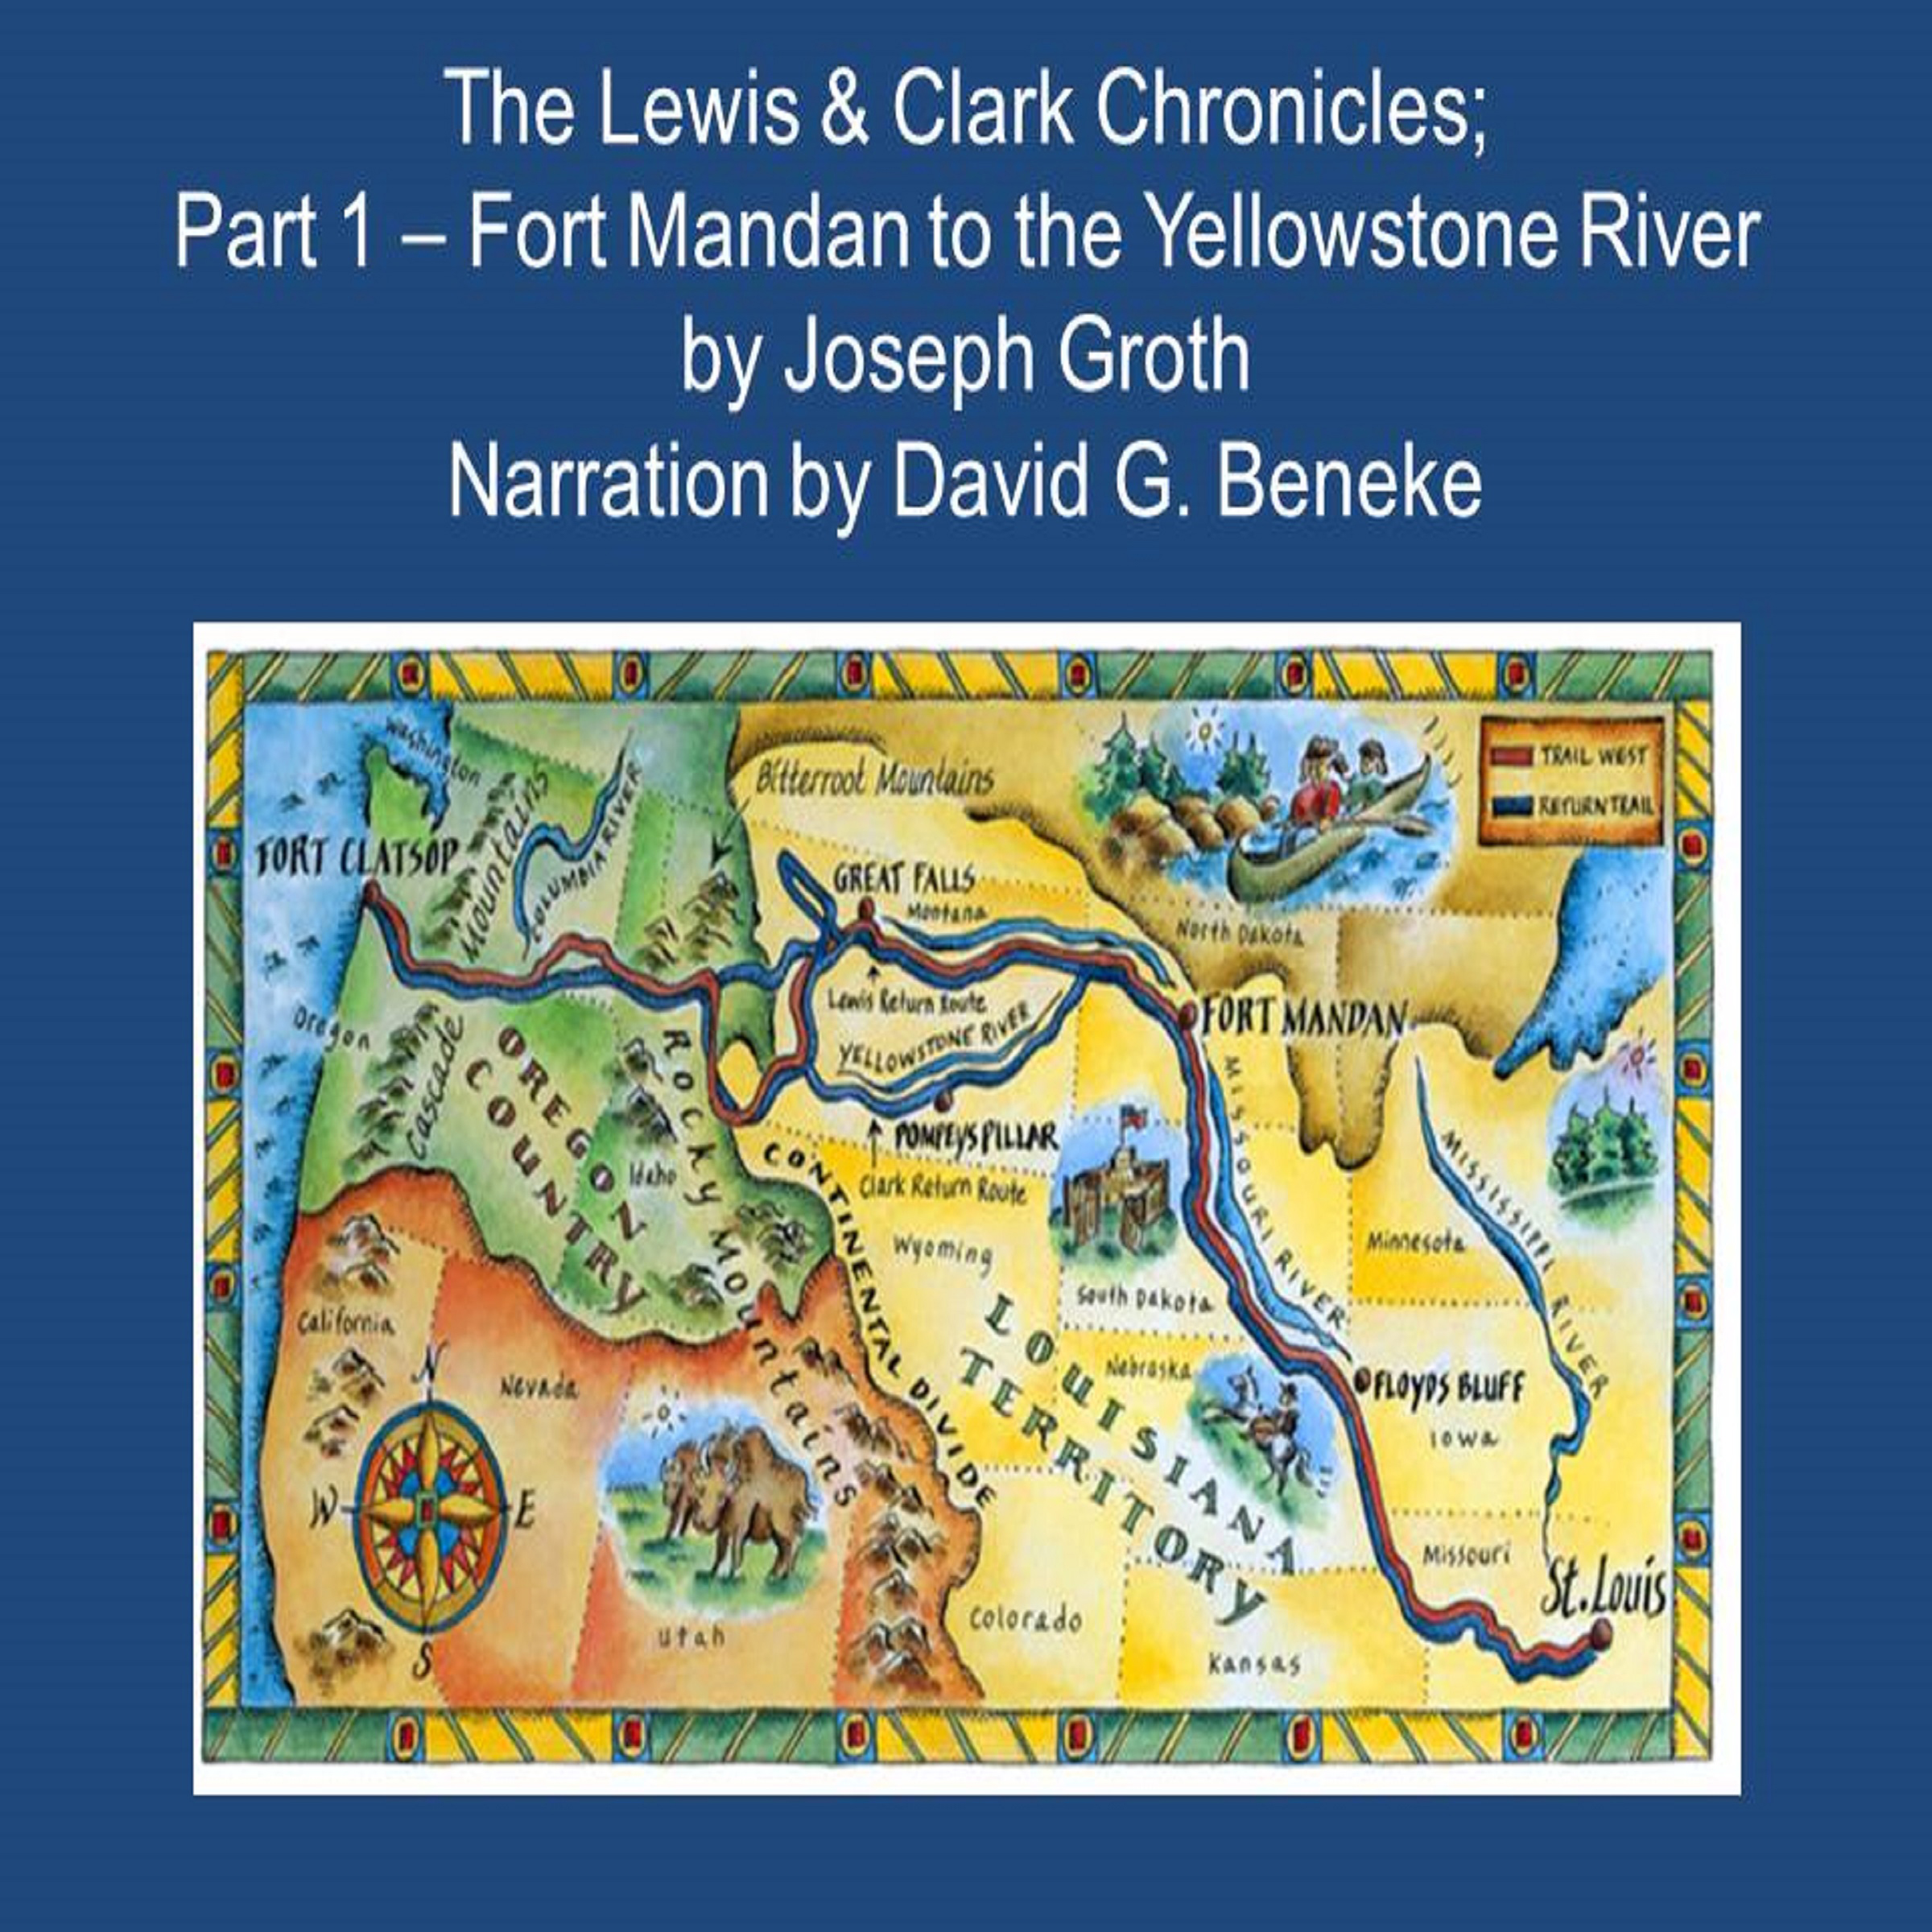 The Lewis & Clark Chronicles, Part 1: Fort Mand...